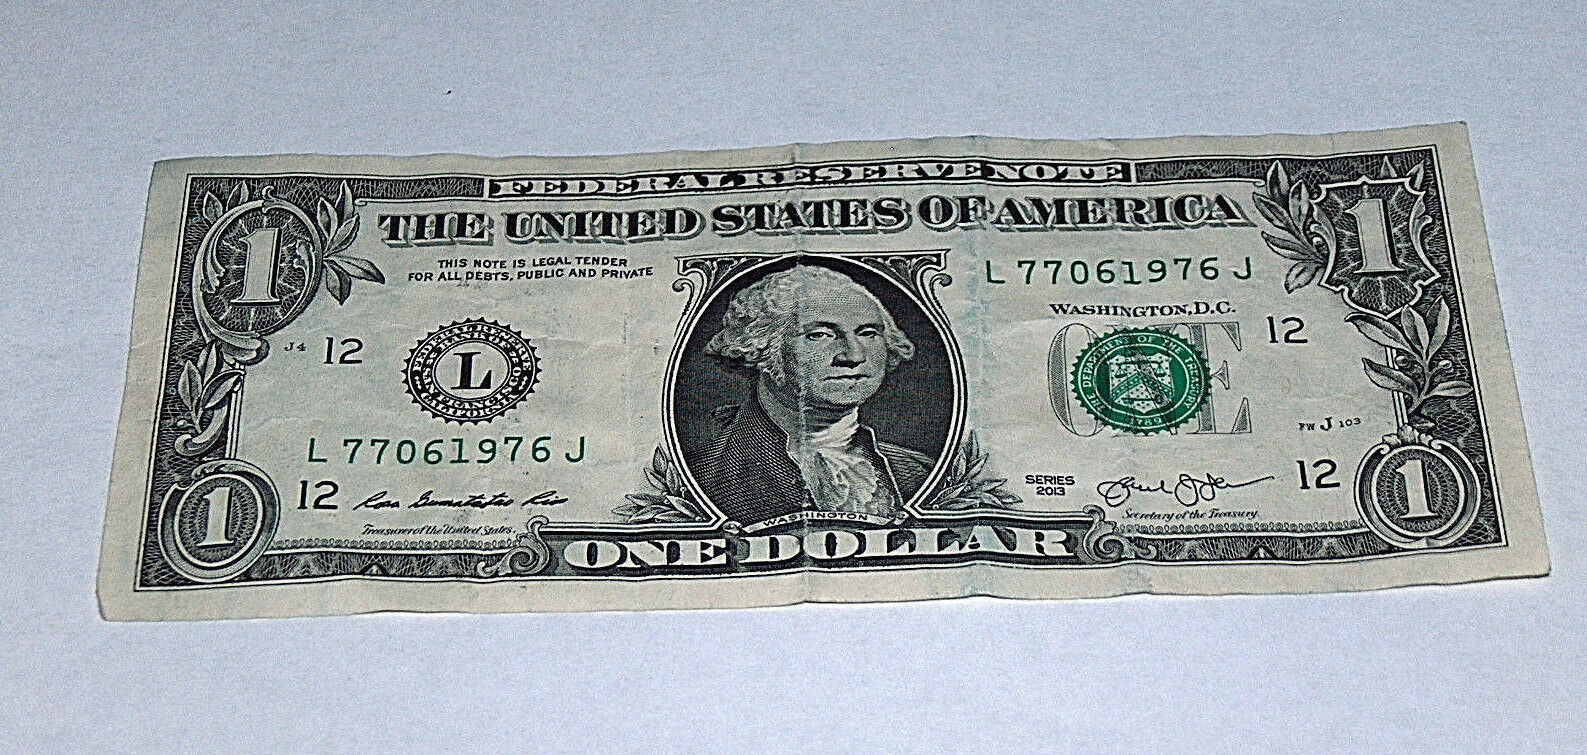 Primary image for 2013 Dollar Bill US Bank Note Date Year Birthday 7706 1976 Fancy Money Serial